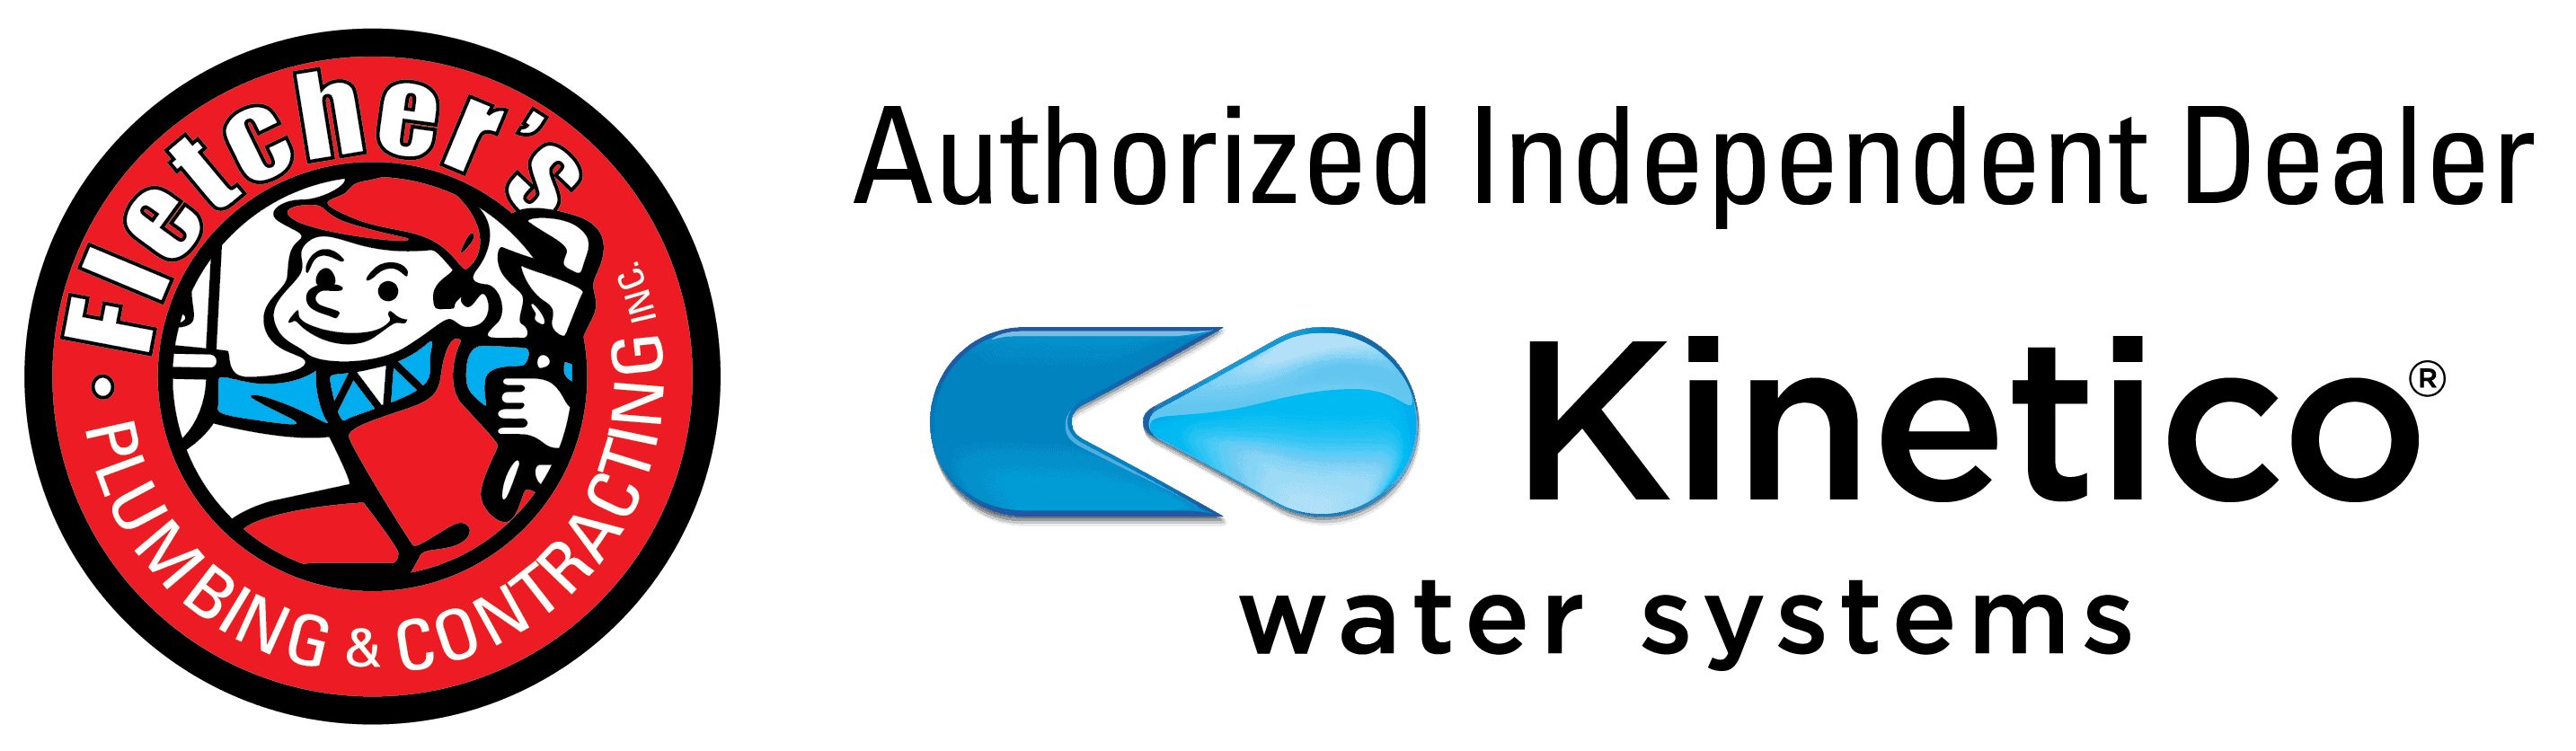 Fletcher's Plumbing & Contracting and Kinetico logos